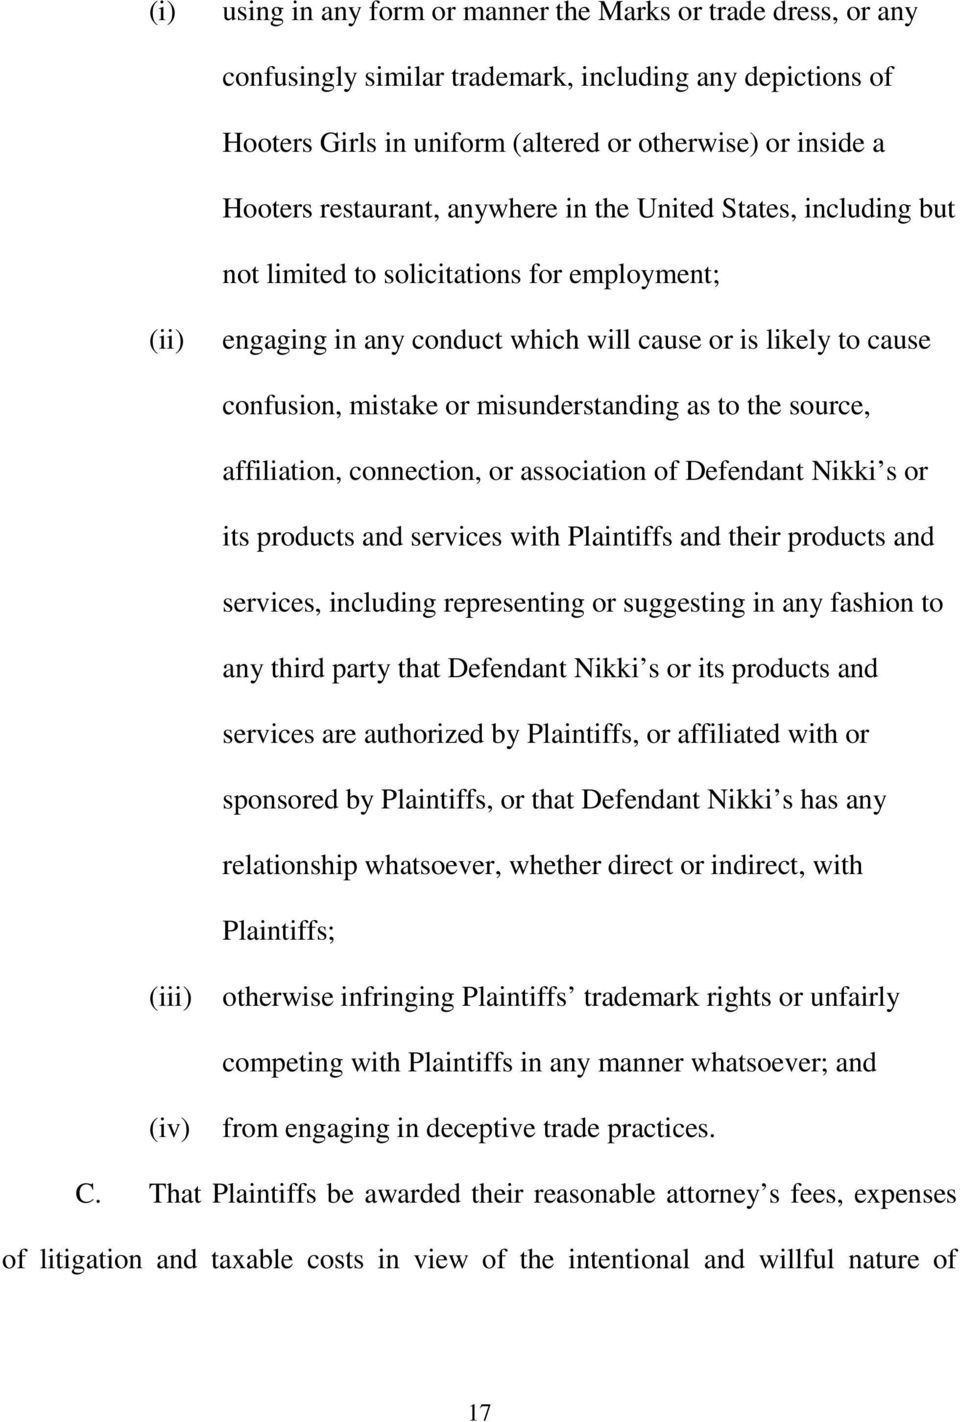 misunderstanding as to the source, affiliation, connection, or association of Defendant Nikki s or its products and services with Plaintiffs and their products and services, including representing or